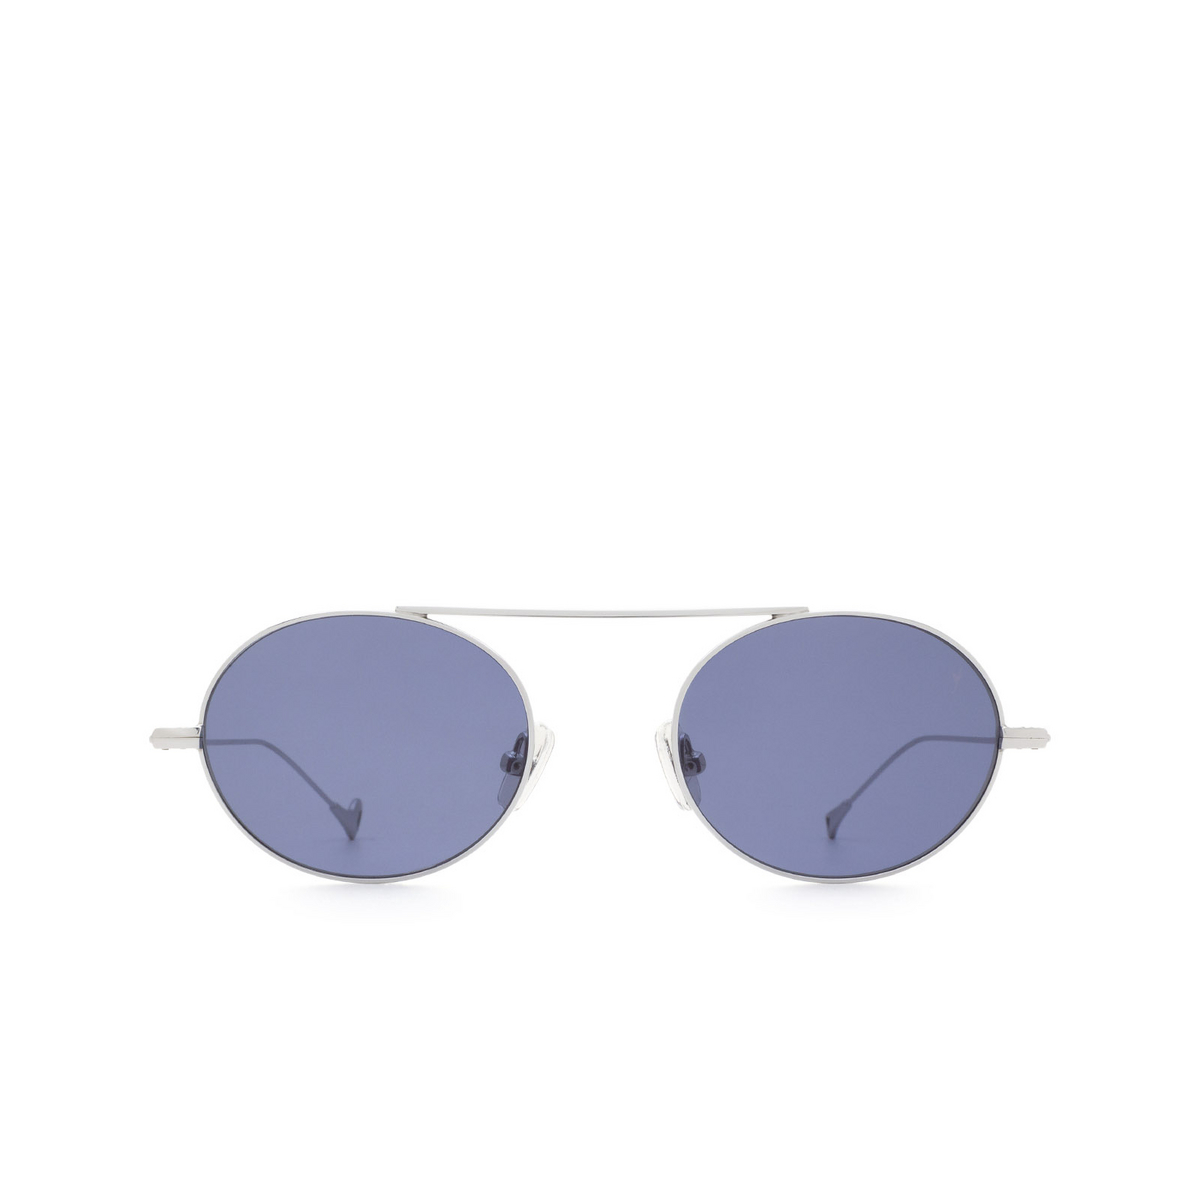 Eyepetizer® Oval Sunglasses: S.eularia color Silver C.1-39 - front view.